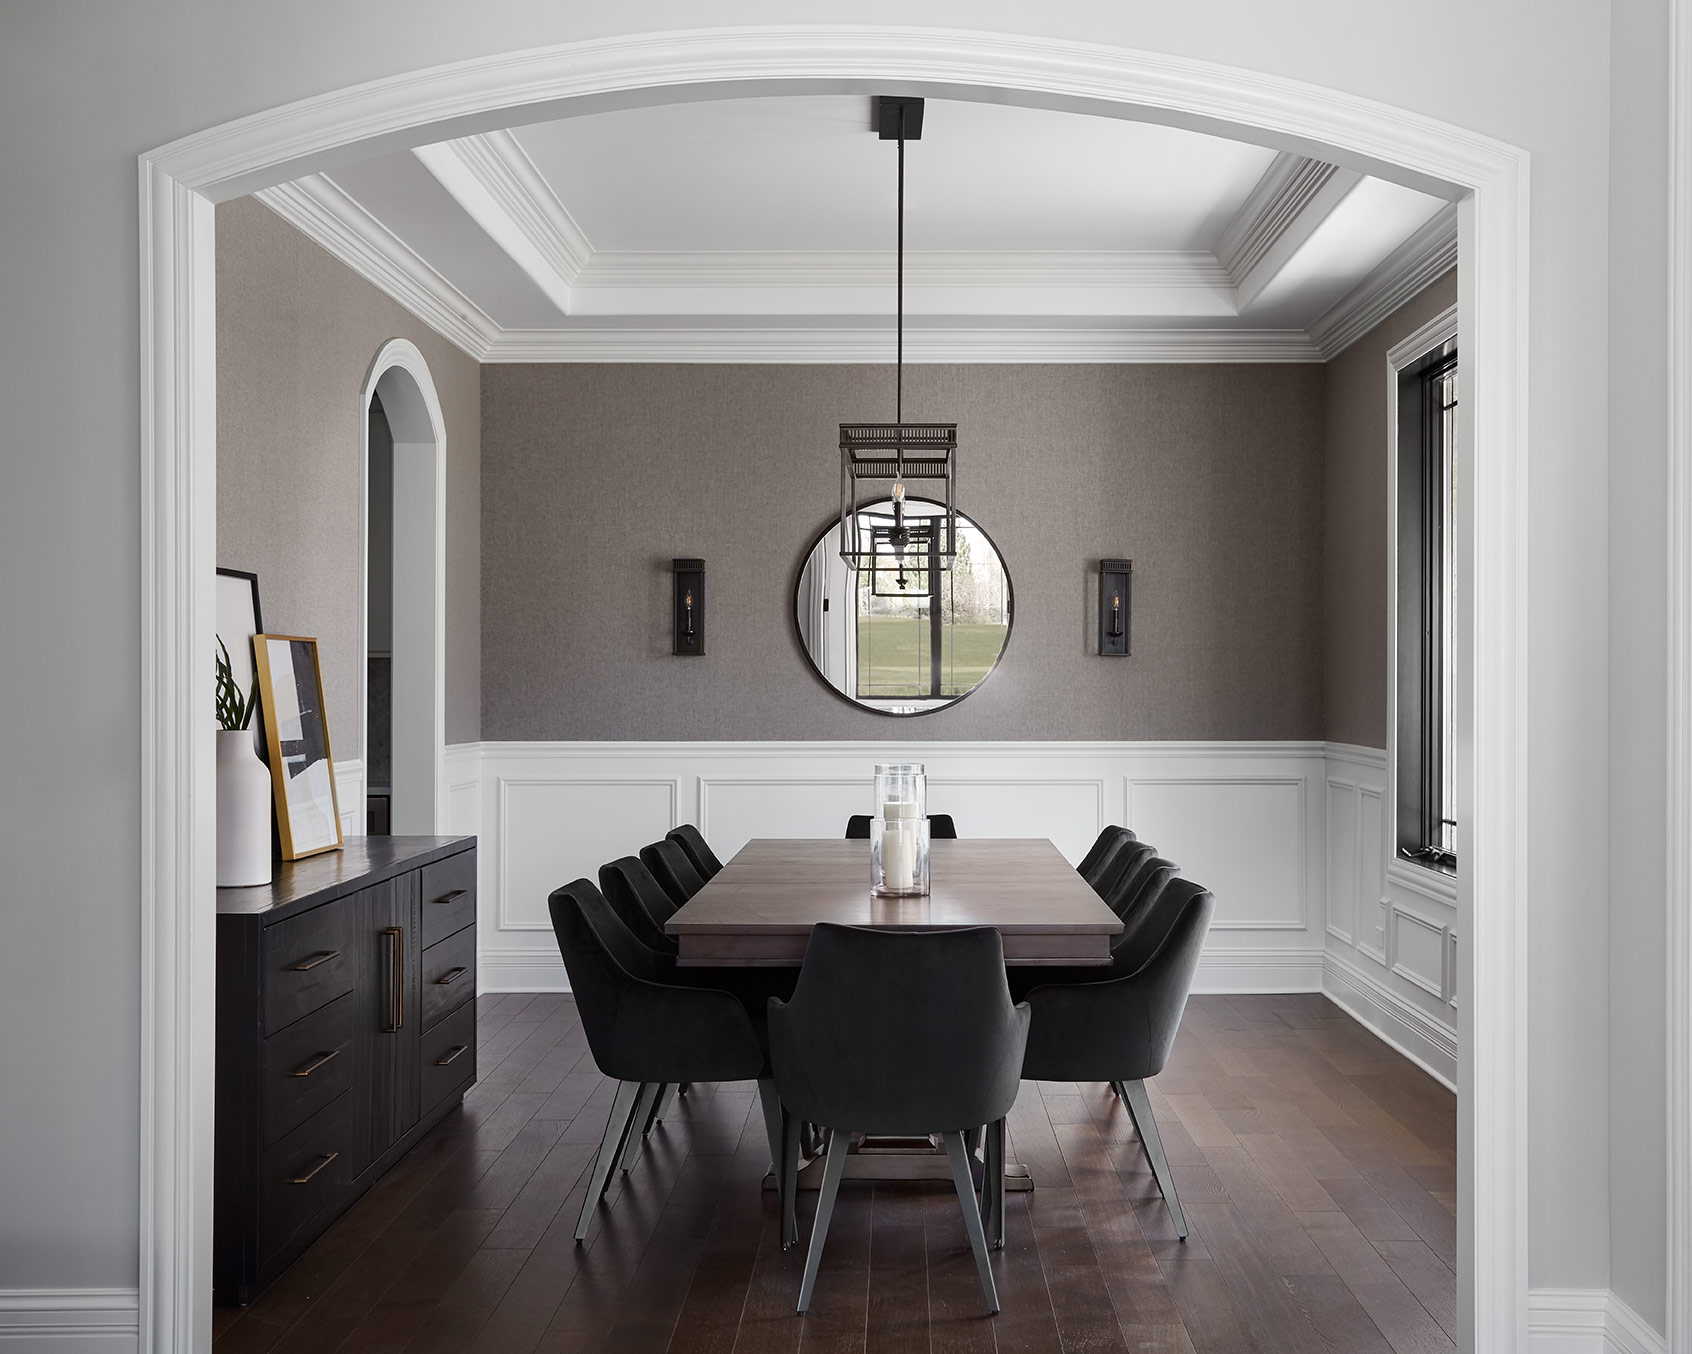 The formal dining room is framed with arched openings and elaborate paneling on the walls and ceiling. We pulled in a textural wallcovering and dark furnishings to add some contrast.